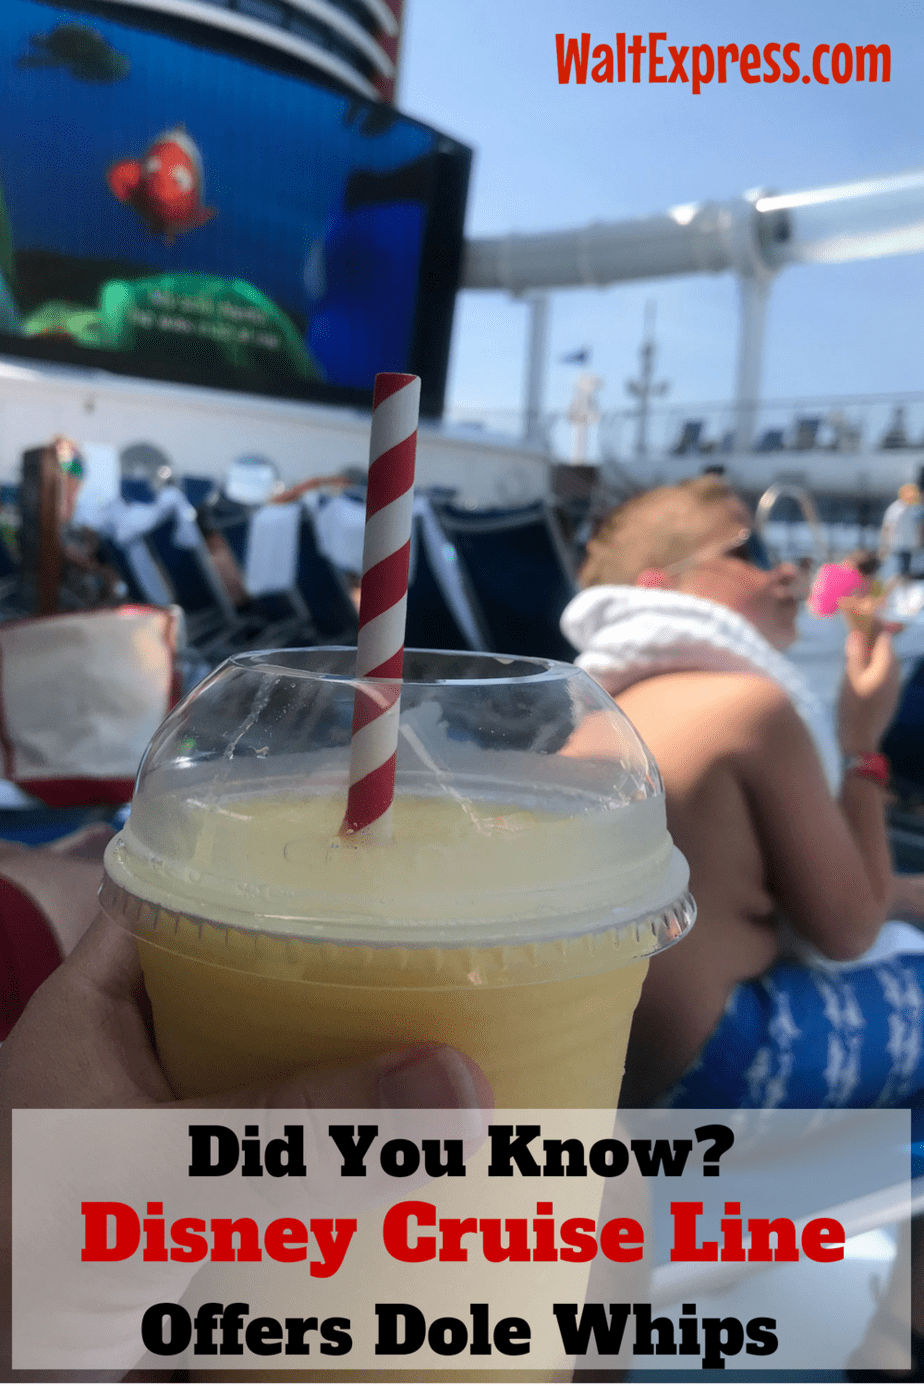 Did You Know? Disney Cruise Line Offers Dole Whips